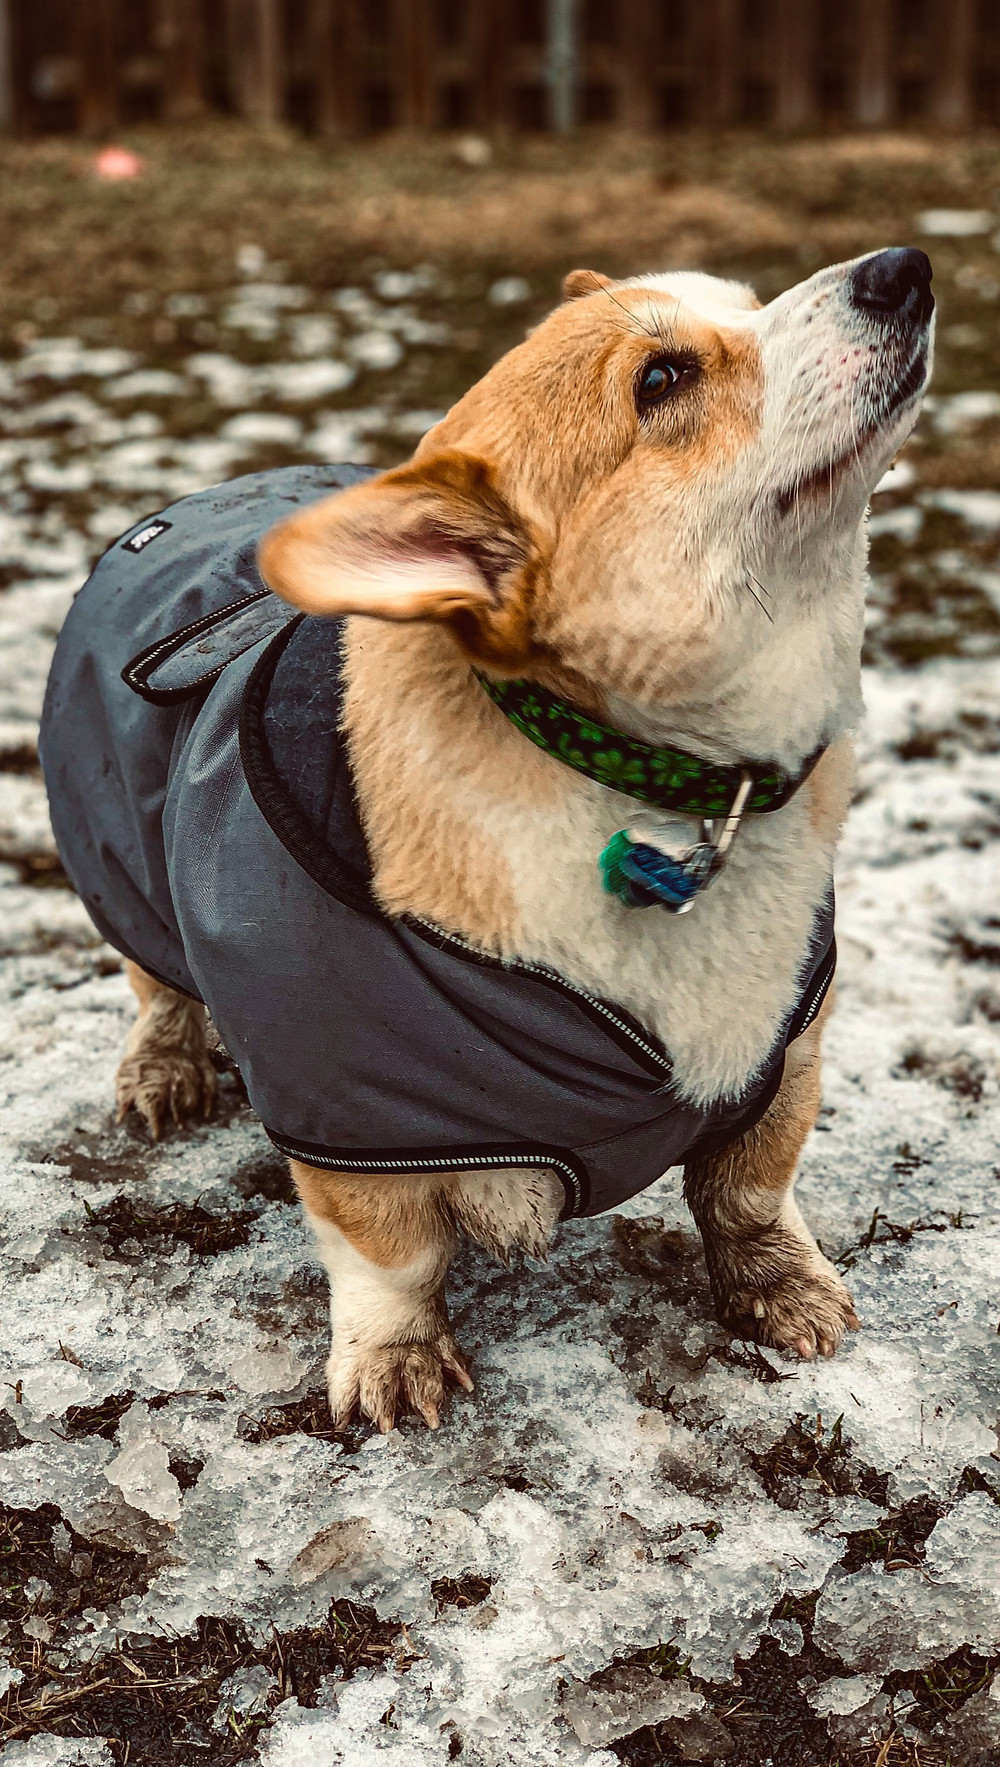 Visual representation of the perfectly designed coat for our dear Winston, as his belly is well covered and protected from the muddy ground to which he'd otherwise have to expose his entire underside.